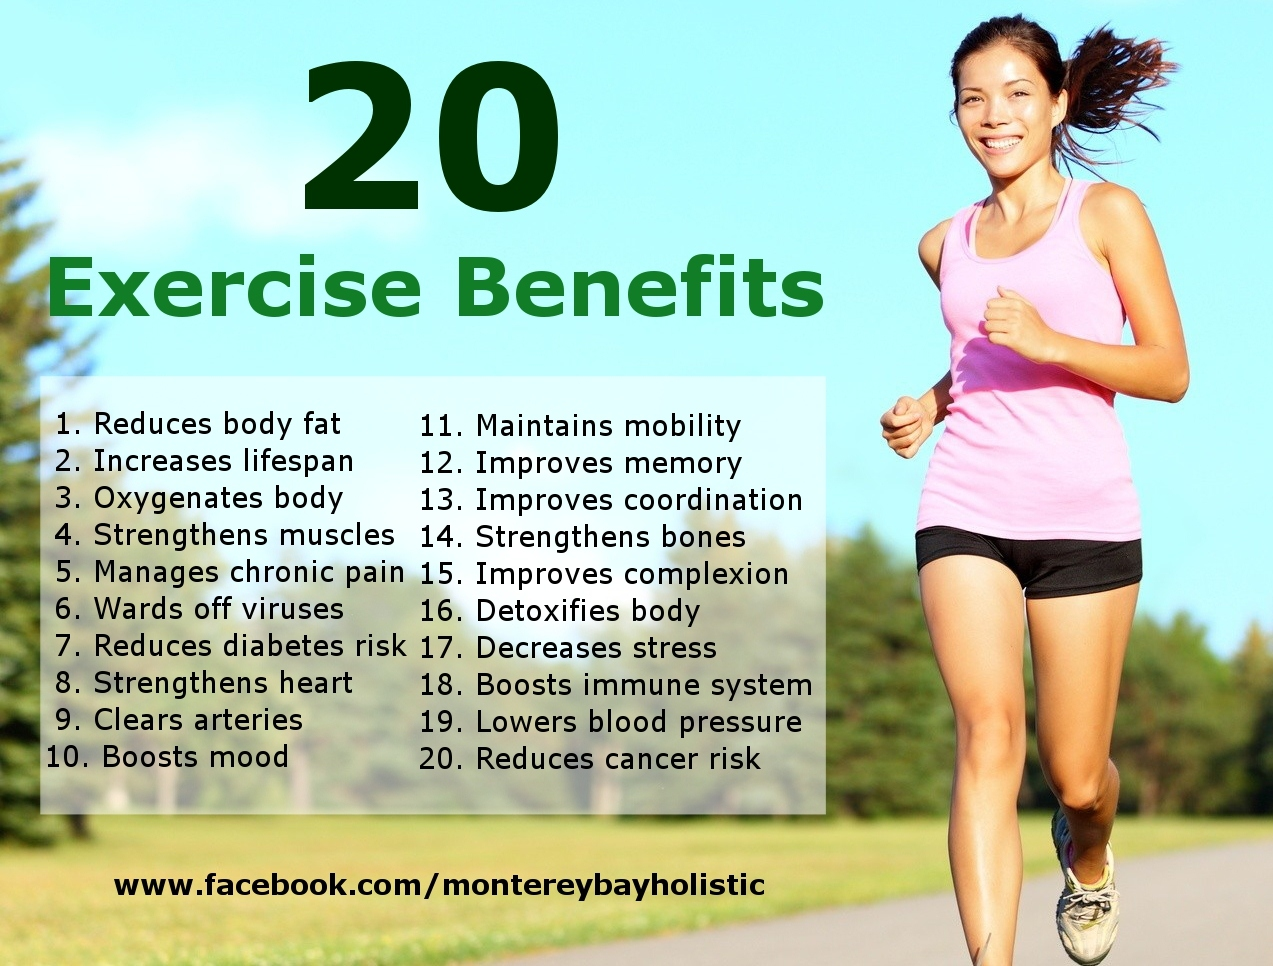 20exercisebenefits